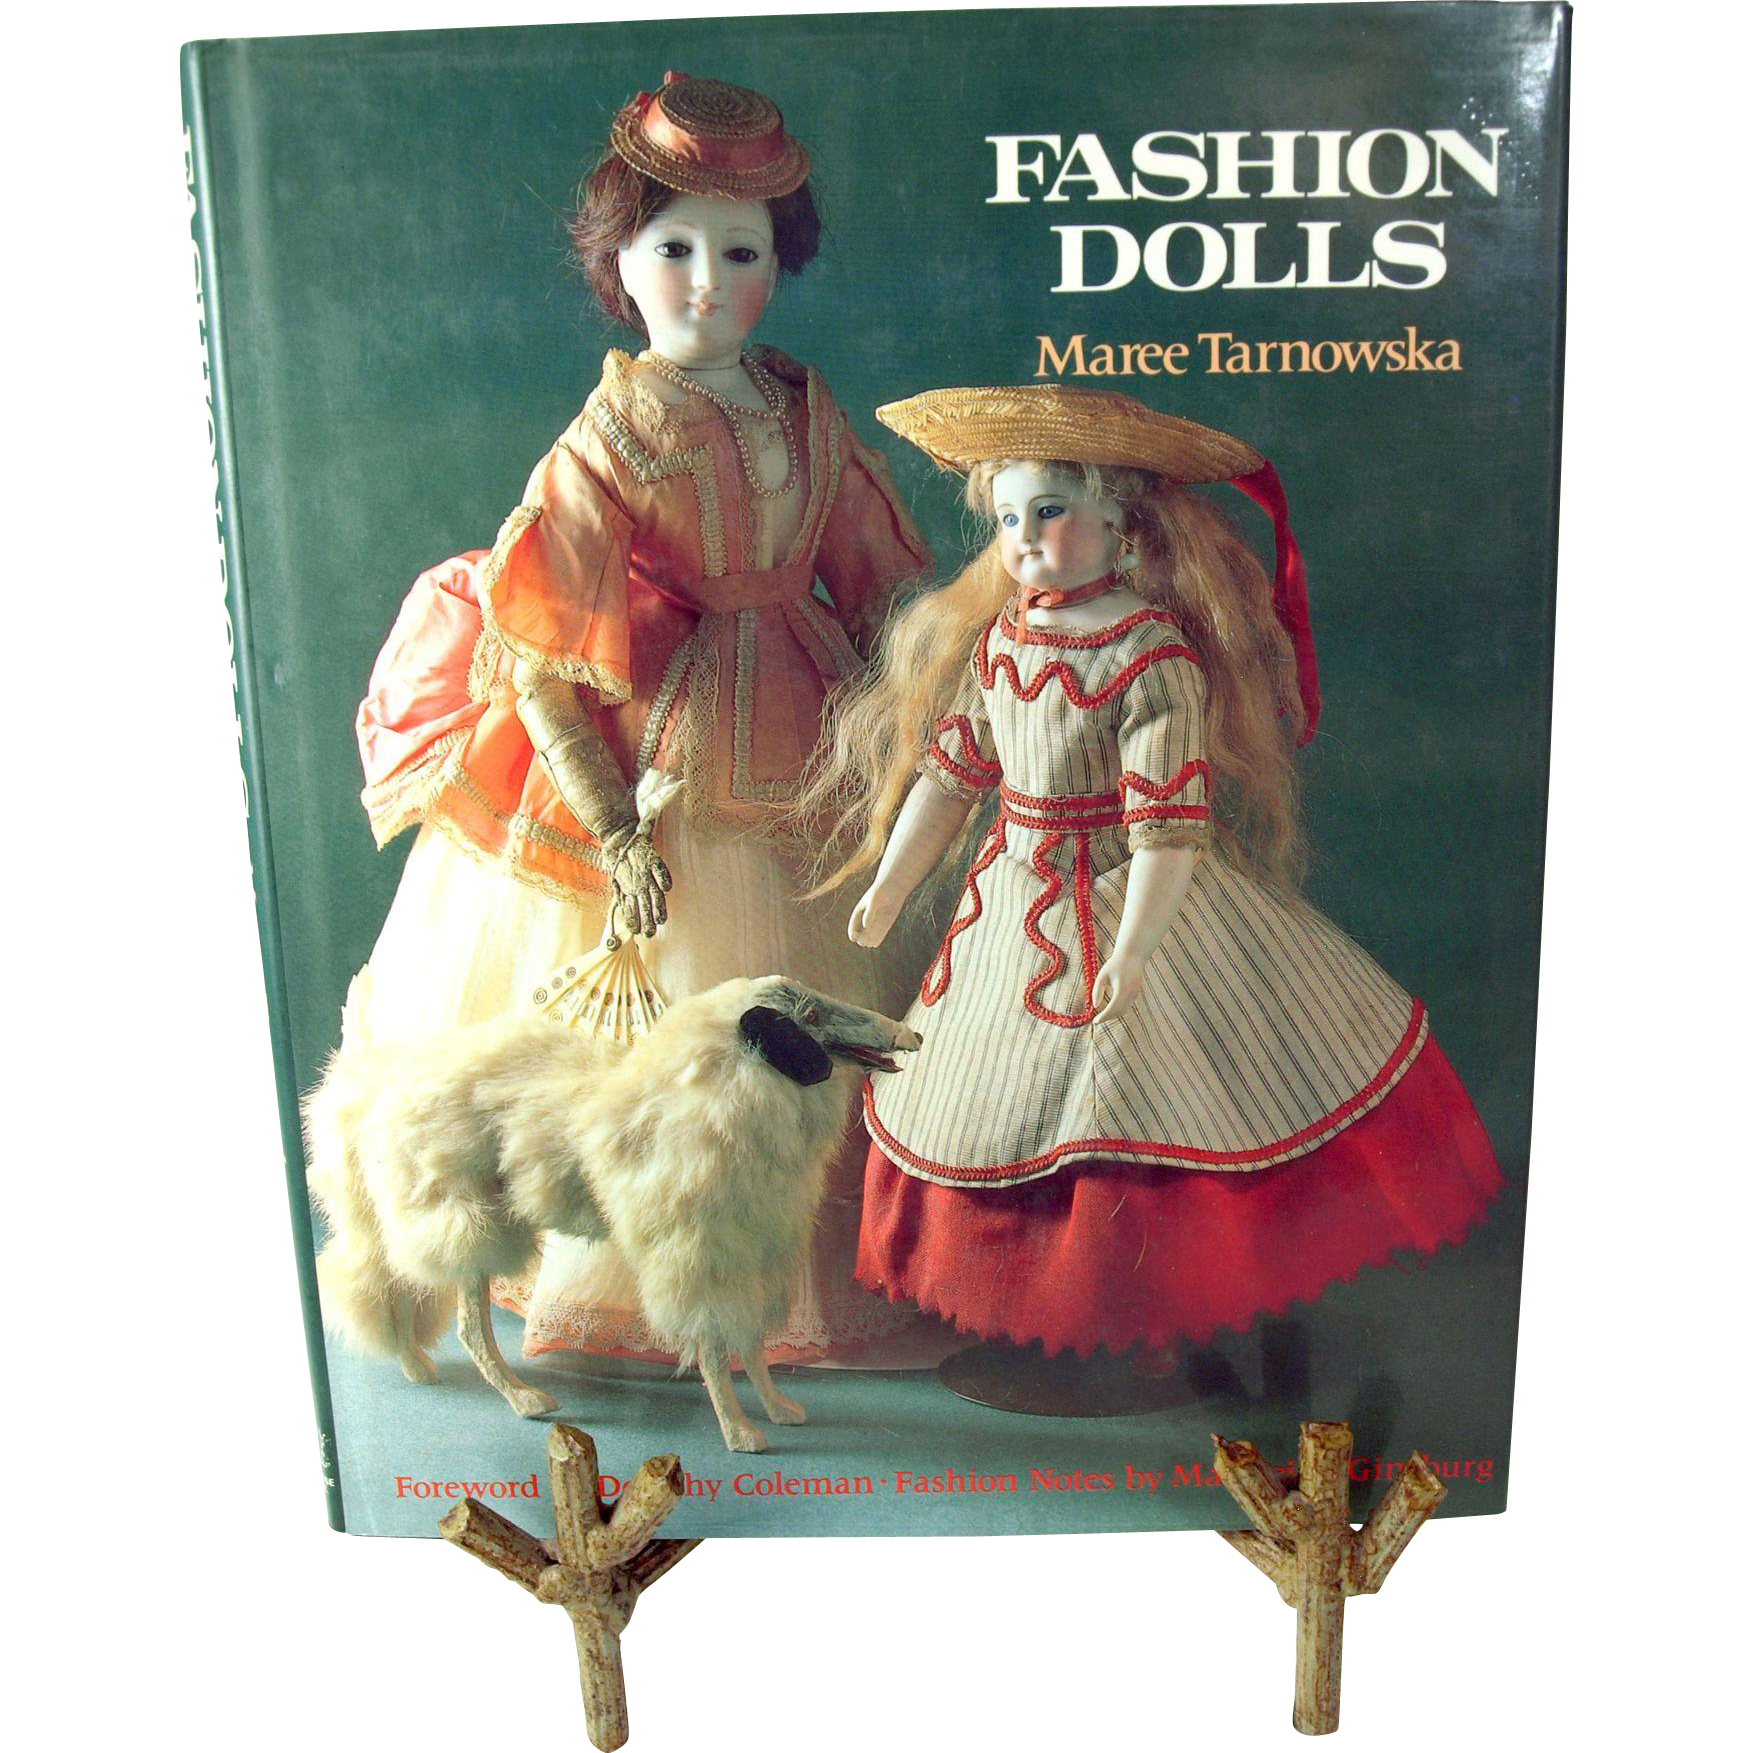 Fashion Dolls Maree Tarnowska hardcover with dustjacket doll reference book Hobby House Press First American Edition 1986